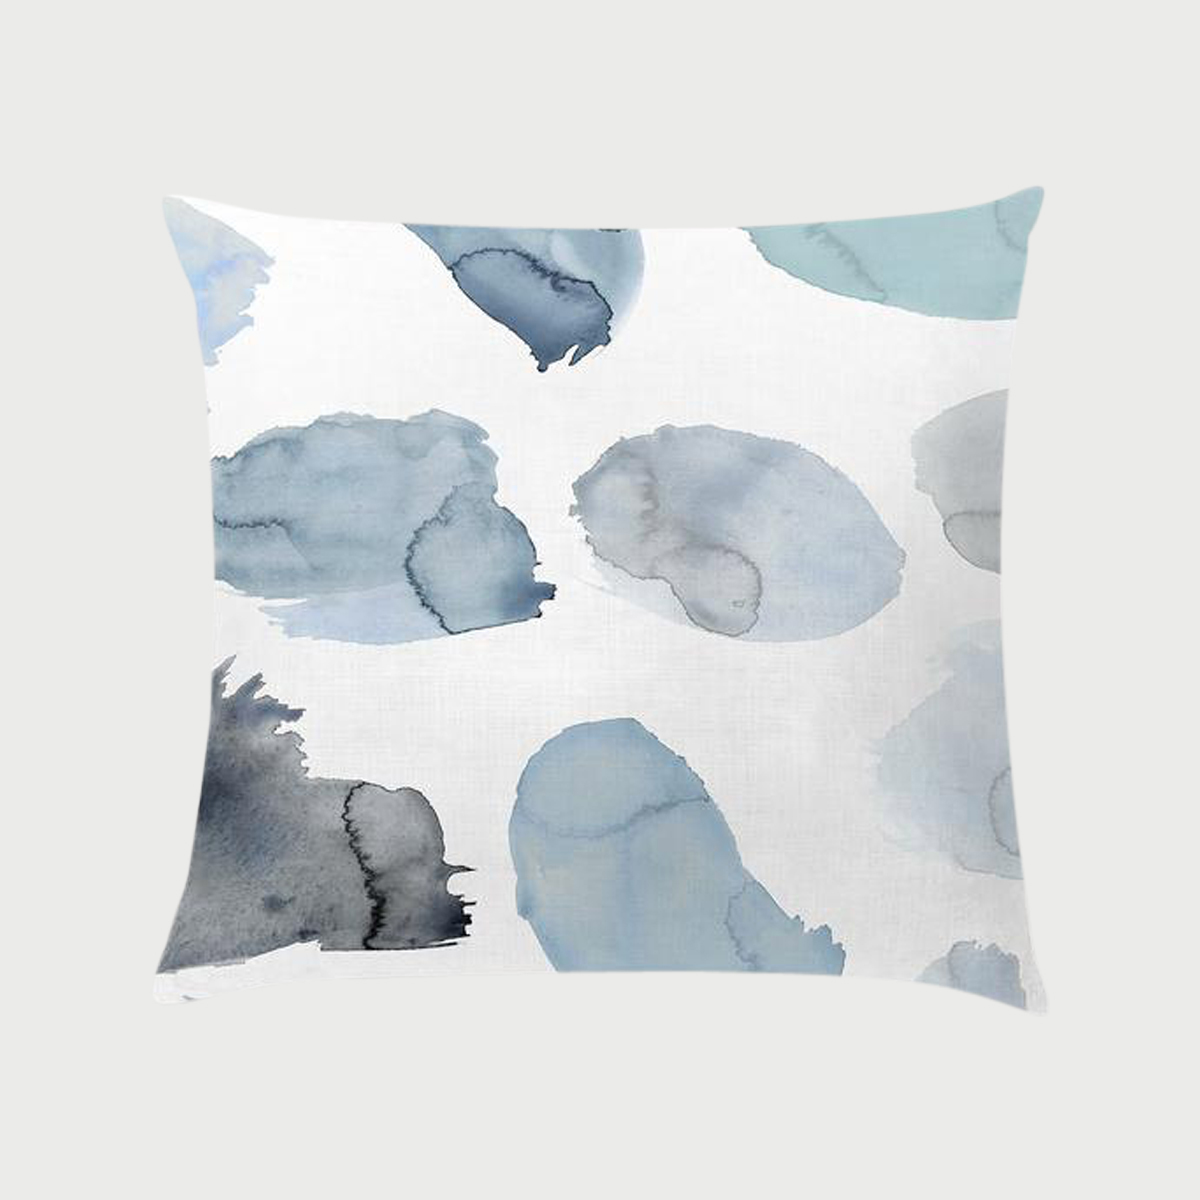 Copy of Palette Pillow in Yves